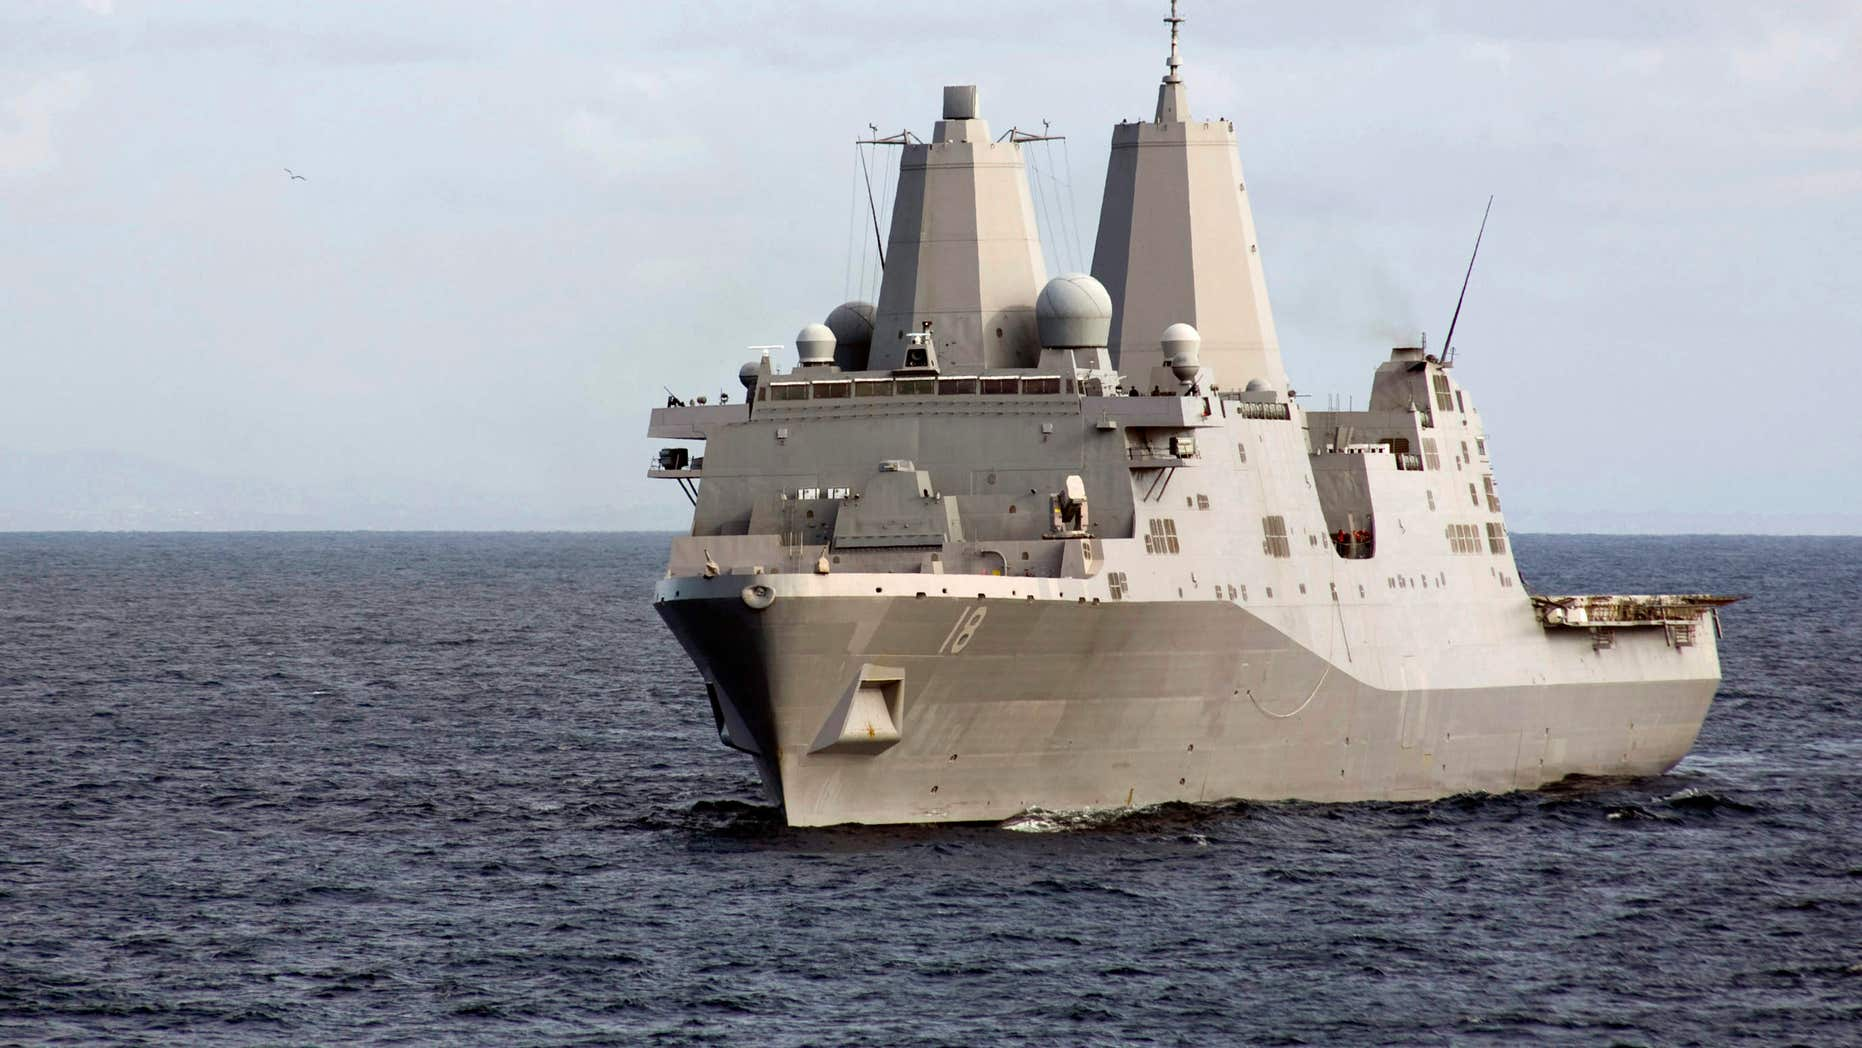 File photo of the amphibious vessel USS New Orleans in the Pacific Ocean